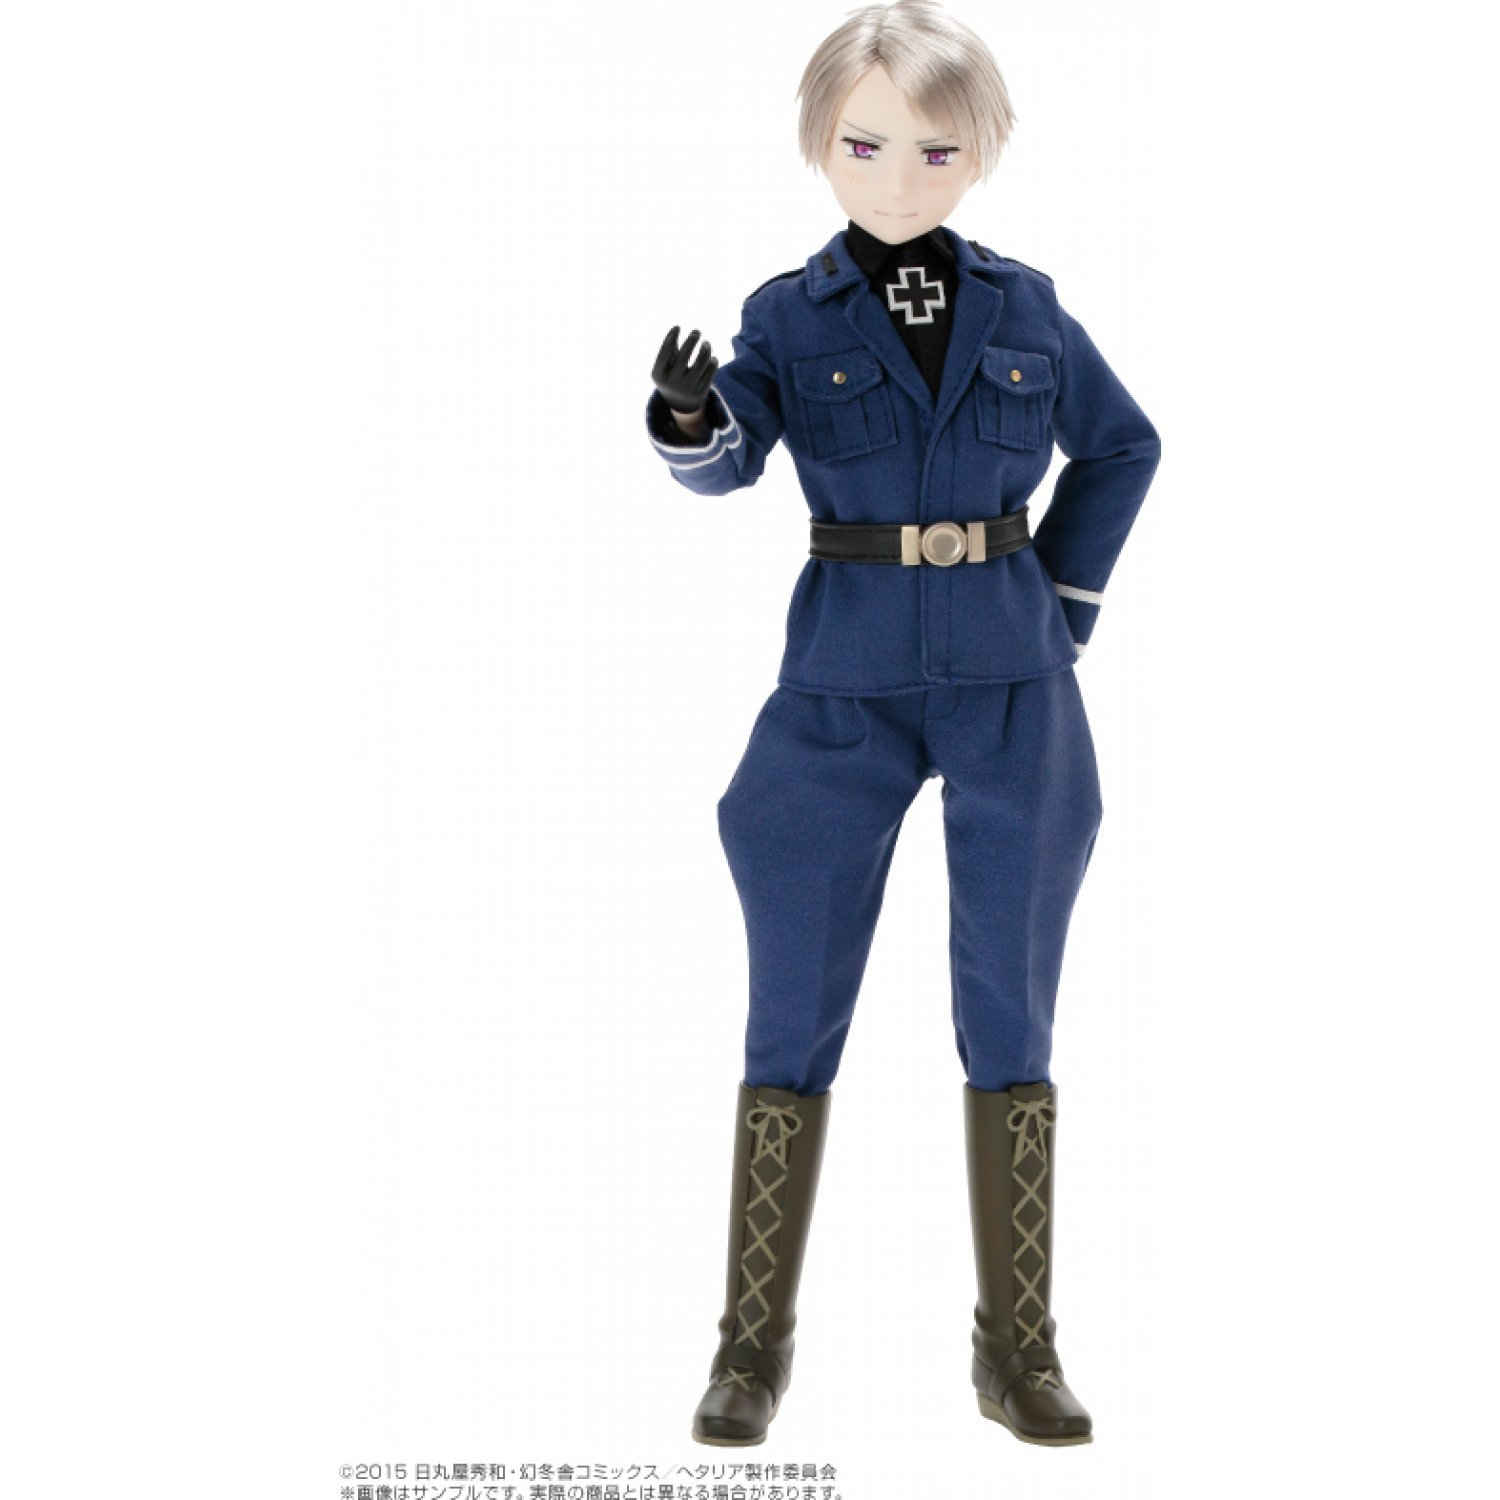 Asterisk Collection Series No  012 Hetalia The World Twinkle 1/6